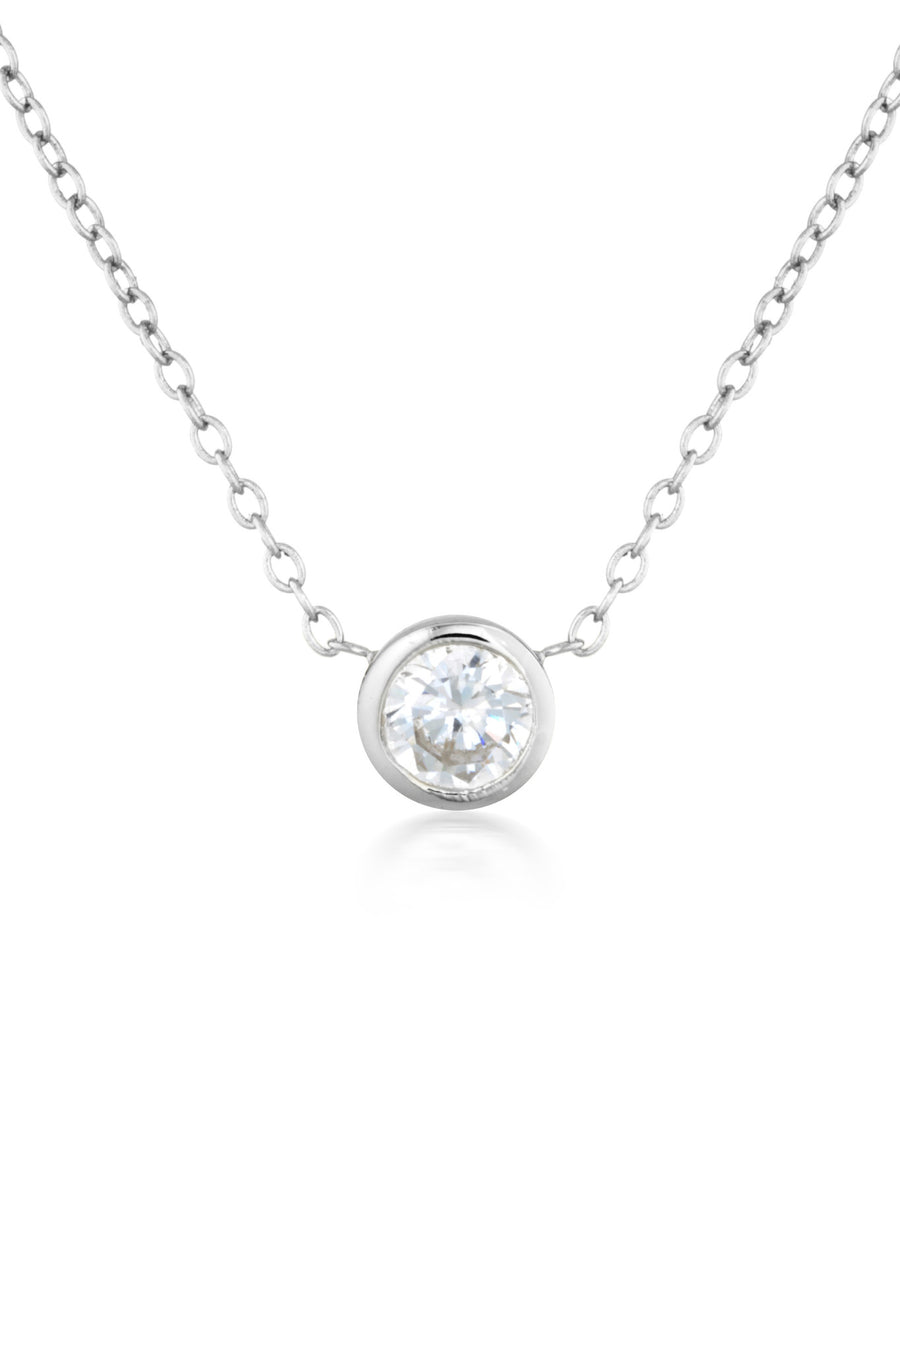 Myla Necklace in Silver - HER Empire Fashion Boutique Terrigal & Online